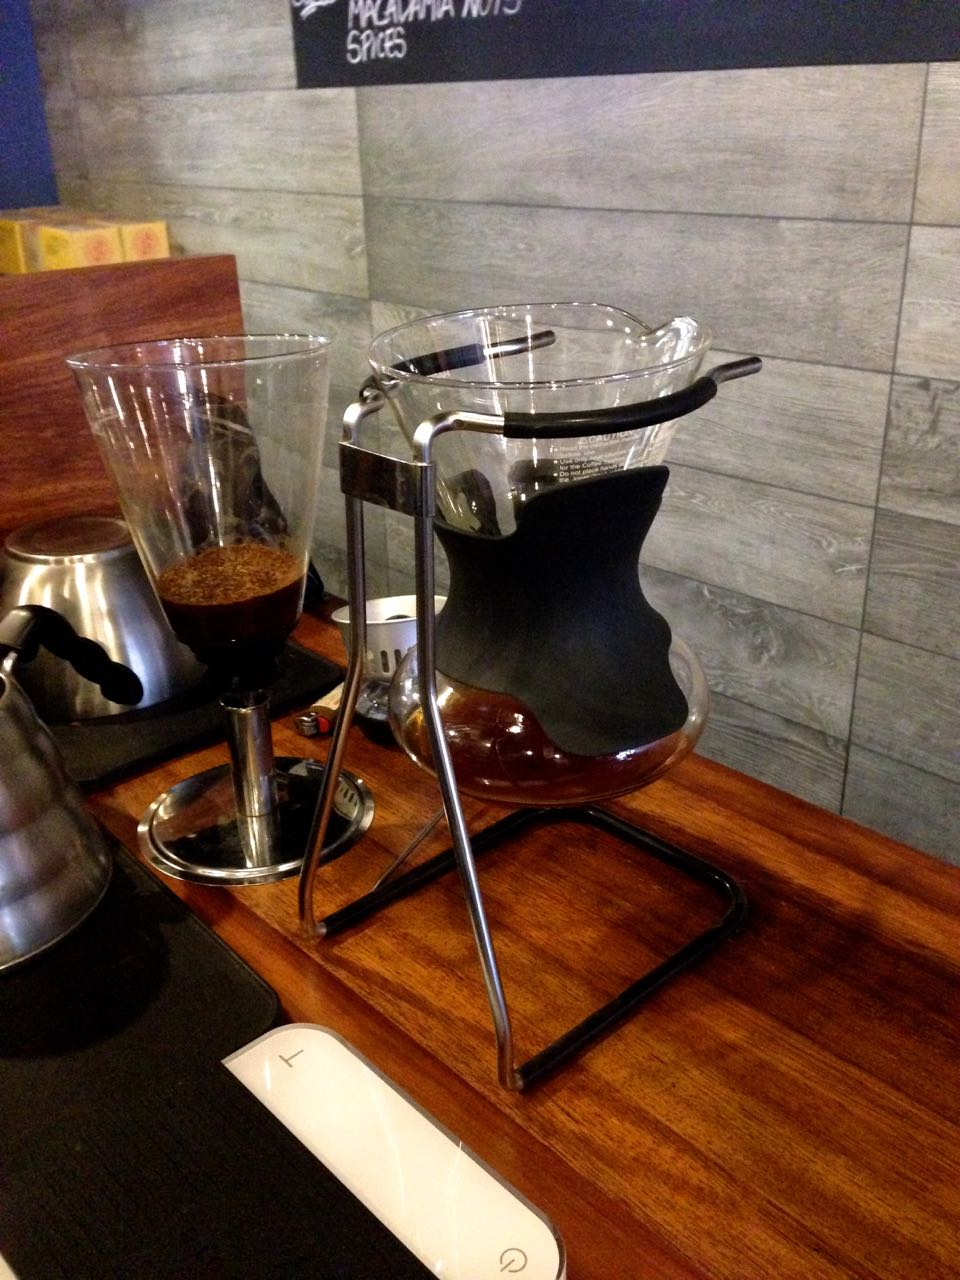 The Reformatory Caffeine Lab - Filter stand